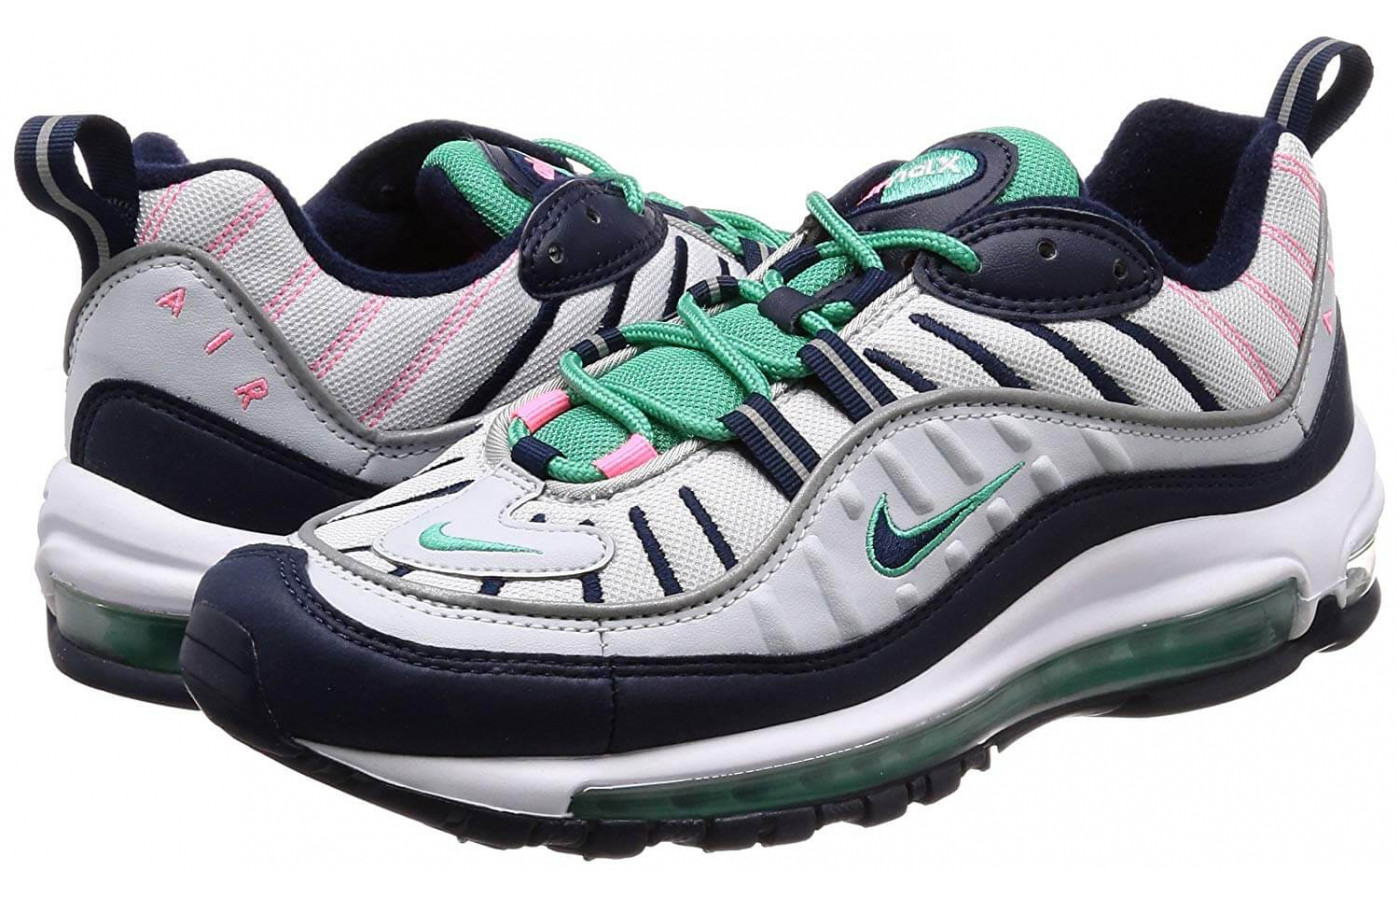 Nike Air Max 98 left right